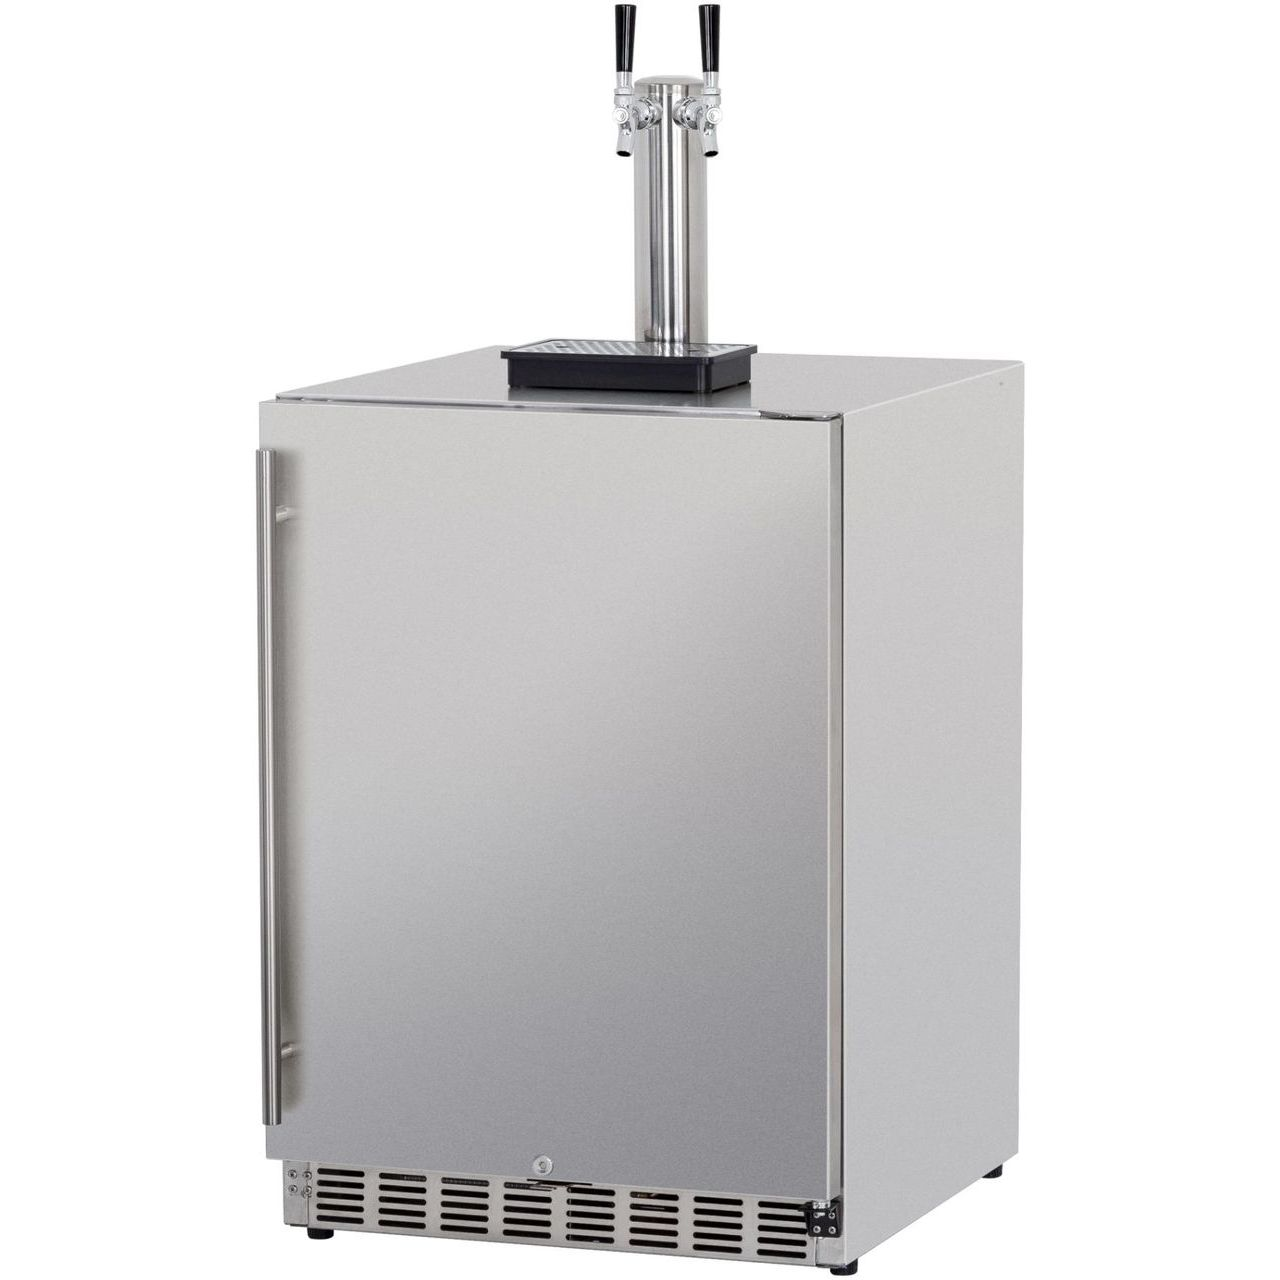 RCS Dual Tap Stainless Kegerator UL Rated For Outdoors